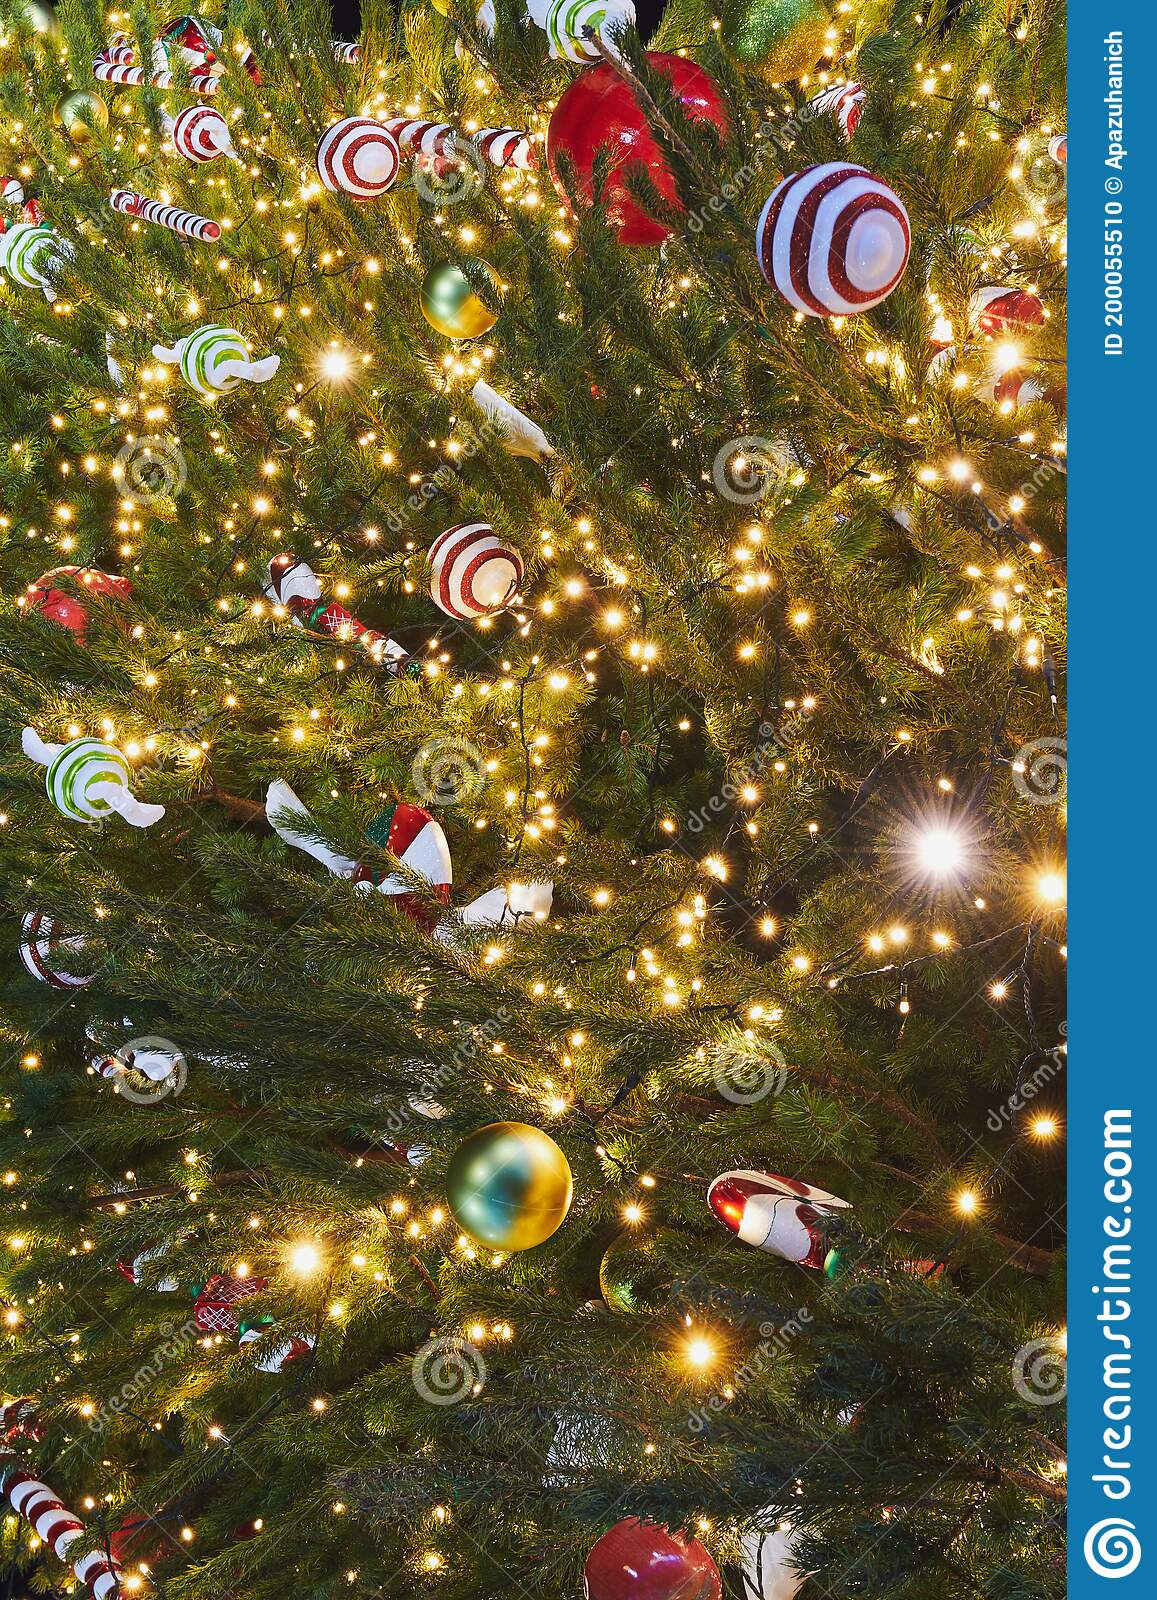 Christmas Tree Decorations On The Natural Tree Stock Photo Image Of Festive Holiday 200055510